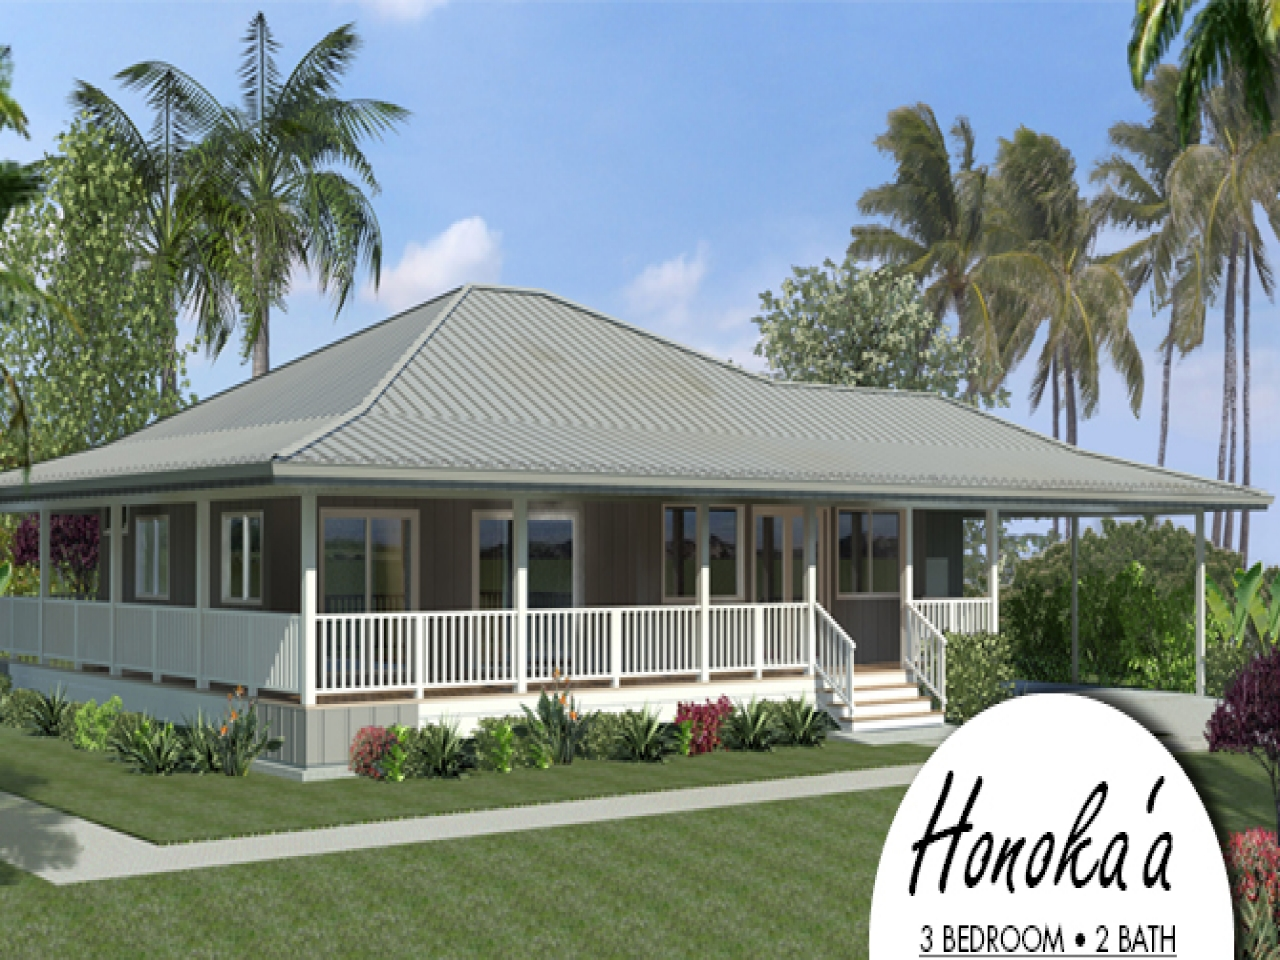 Island style house plans hawaiian plantation style house for Hawaiian style home plans